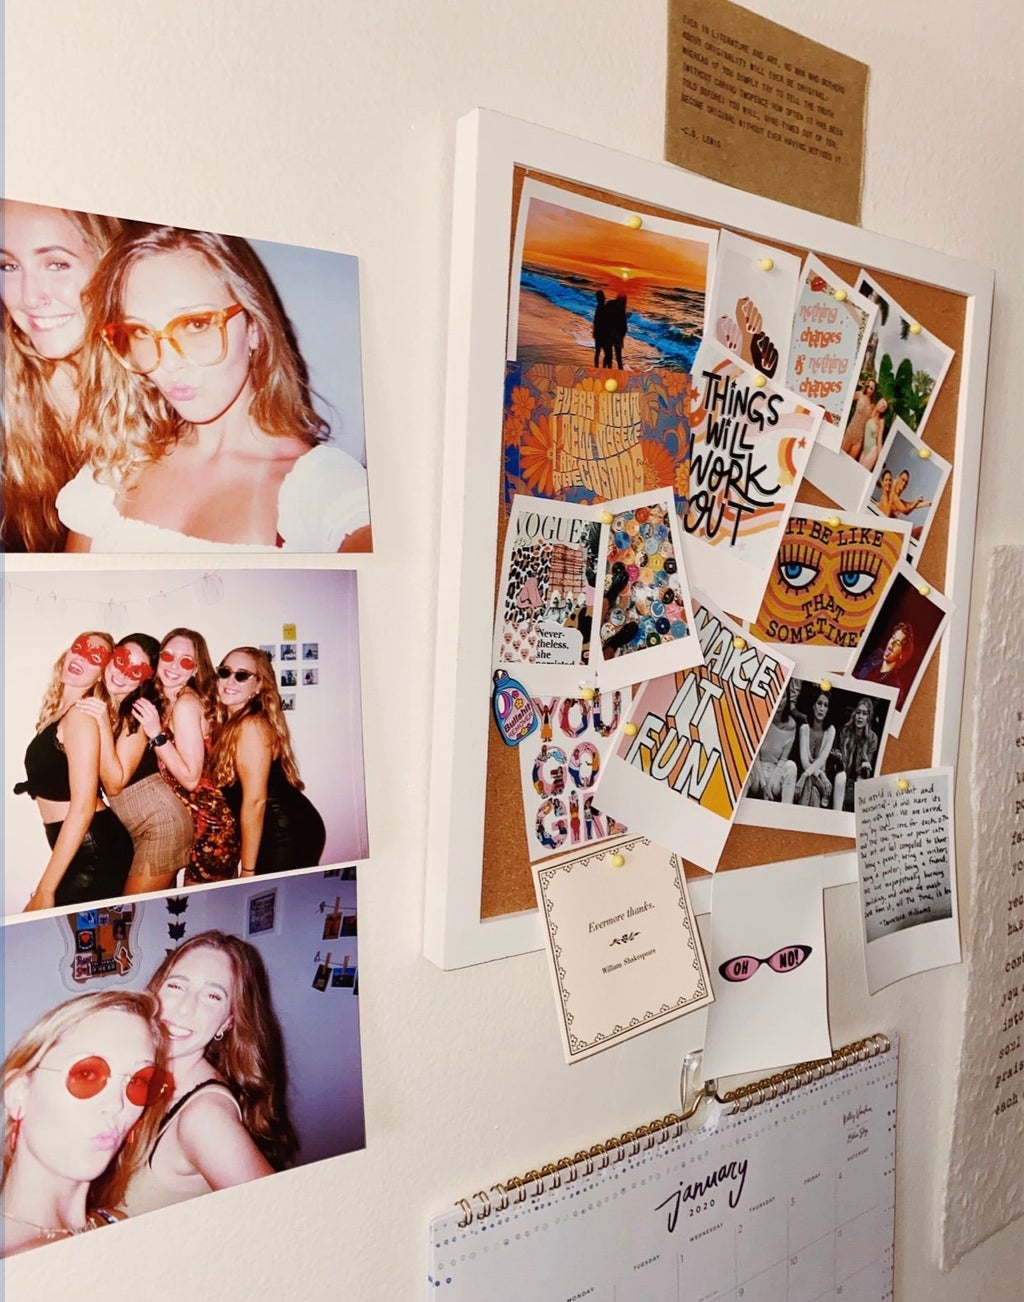 Picture of pictures on a wall